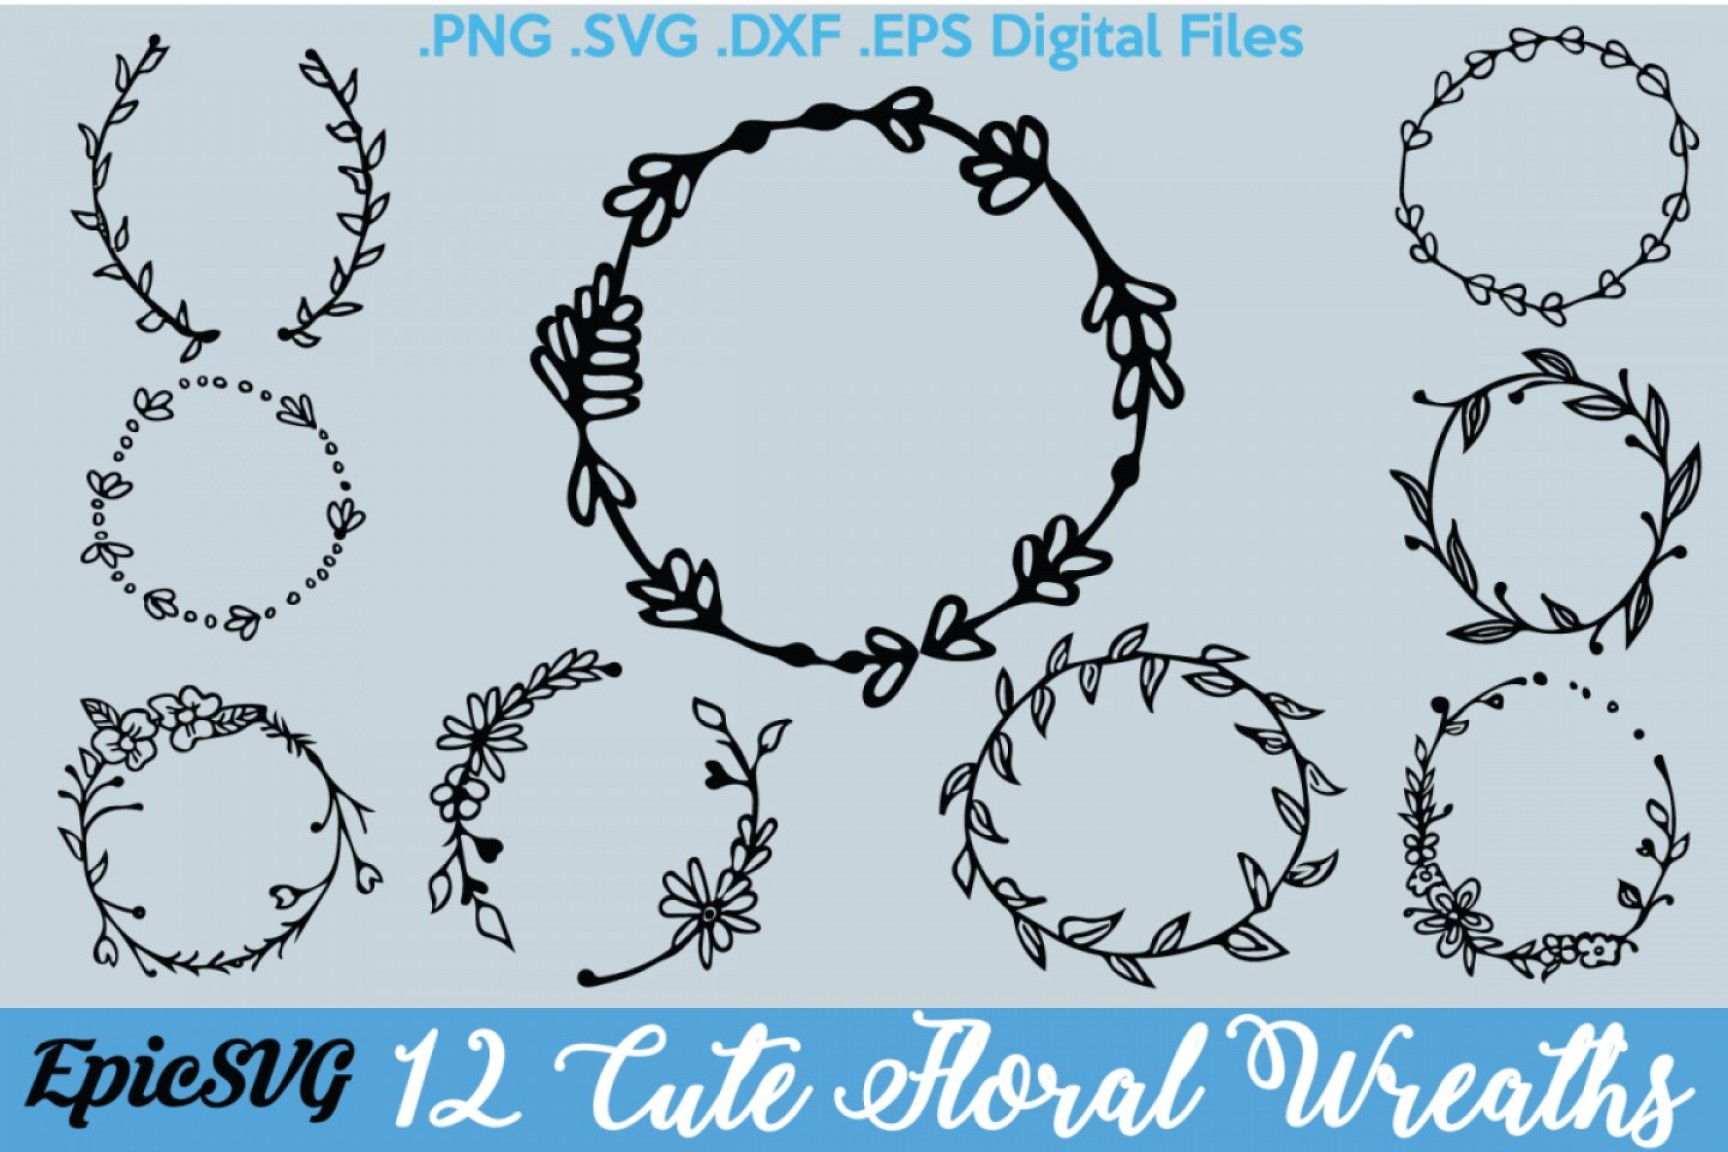 Floral Laurel Wreath Vector: Floral Wreath Designs Svg Dxf Eps Wedding Gift Frame Design Cutting Silhouette Digital Files Floral Laurel Wreath Designs